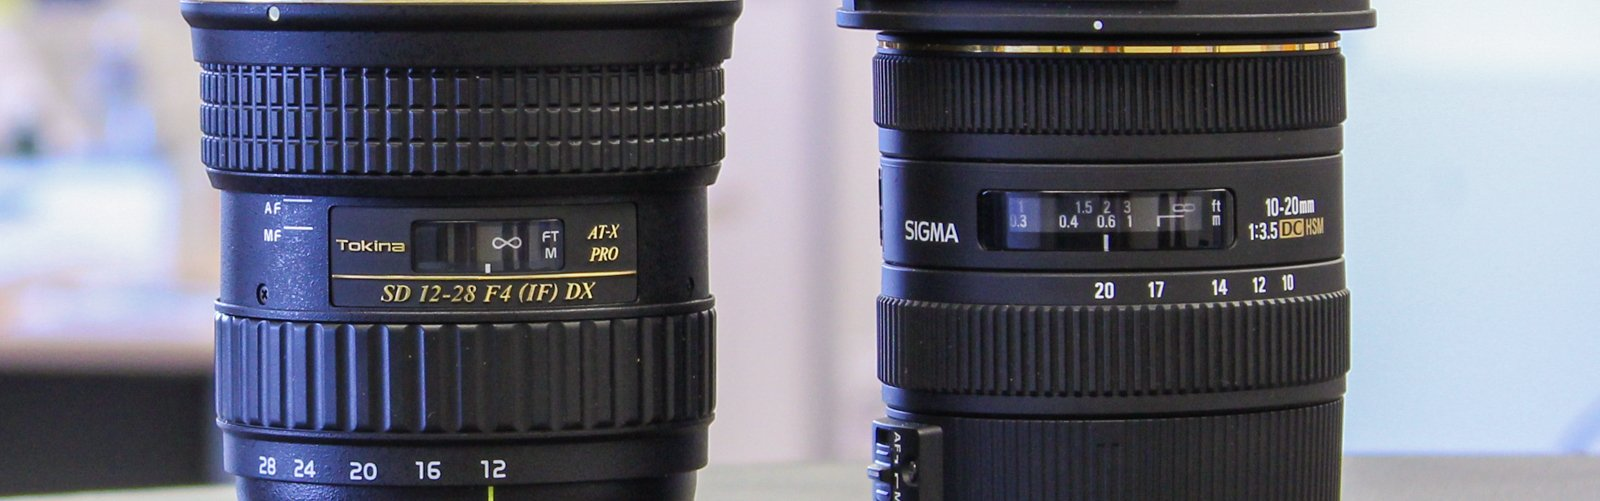 A Tokina and Sigma lens side by side on a table